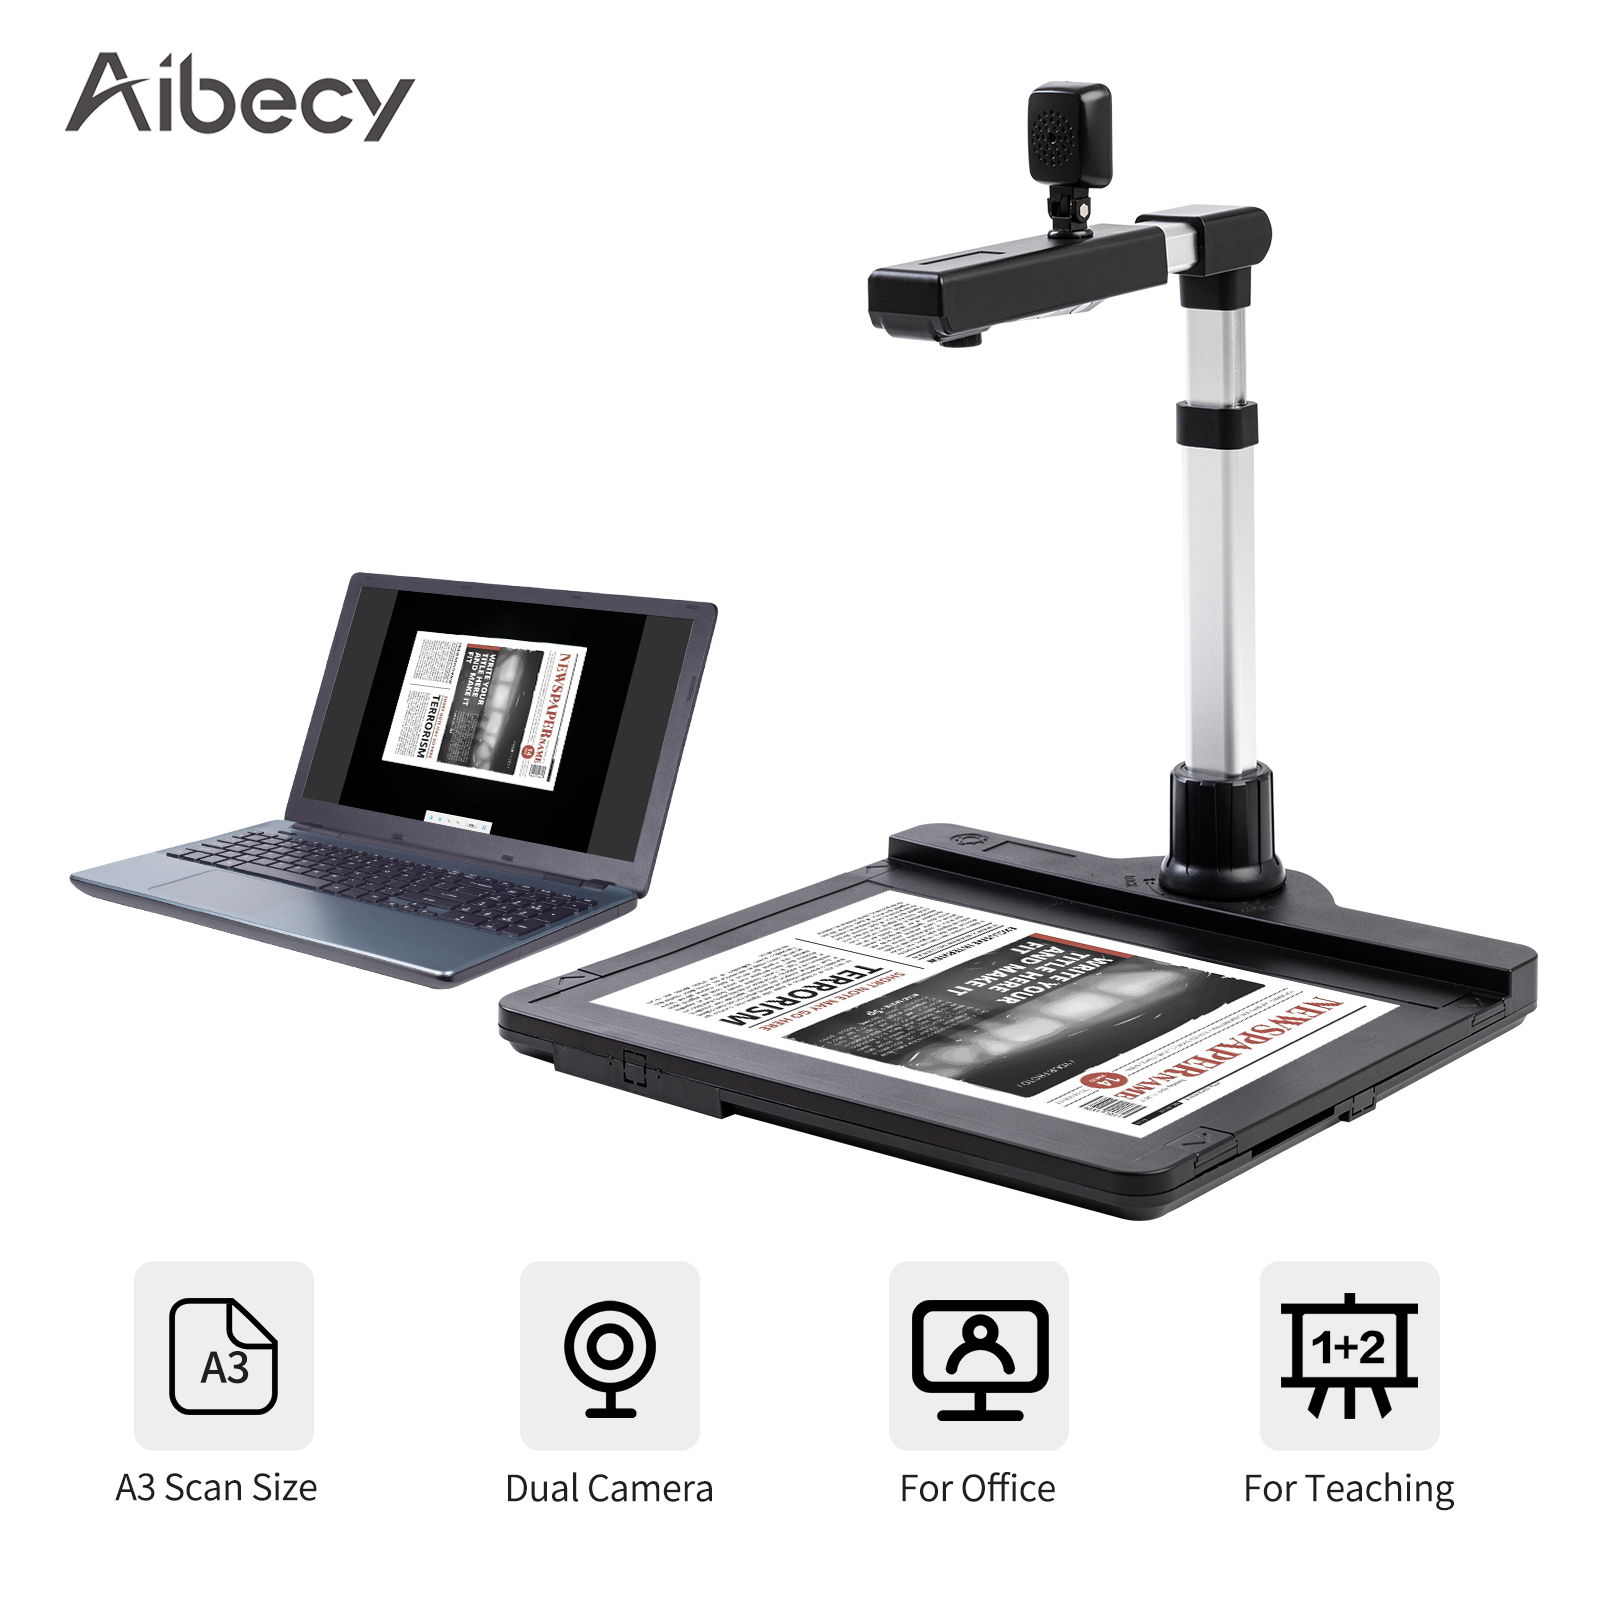 Aibecy X1000 USB2.0 Scanner Dual Camera A3 Capture Document Camera Scanner with LED OCR Video Recording Convert to PDF Format